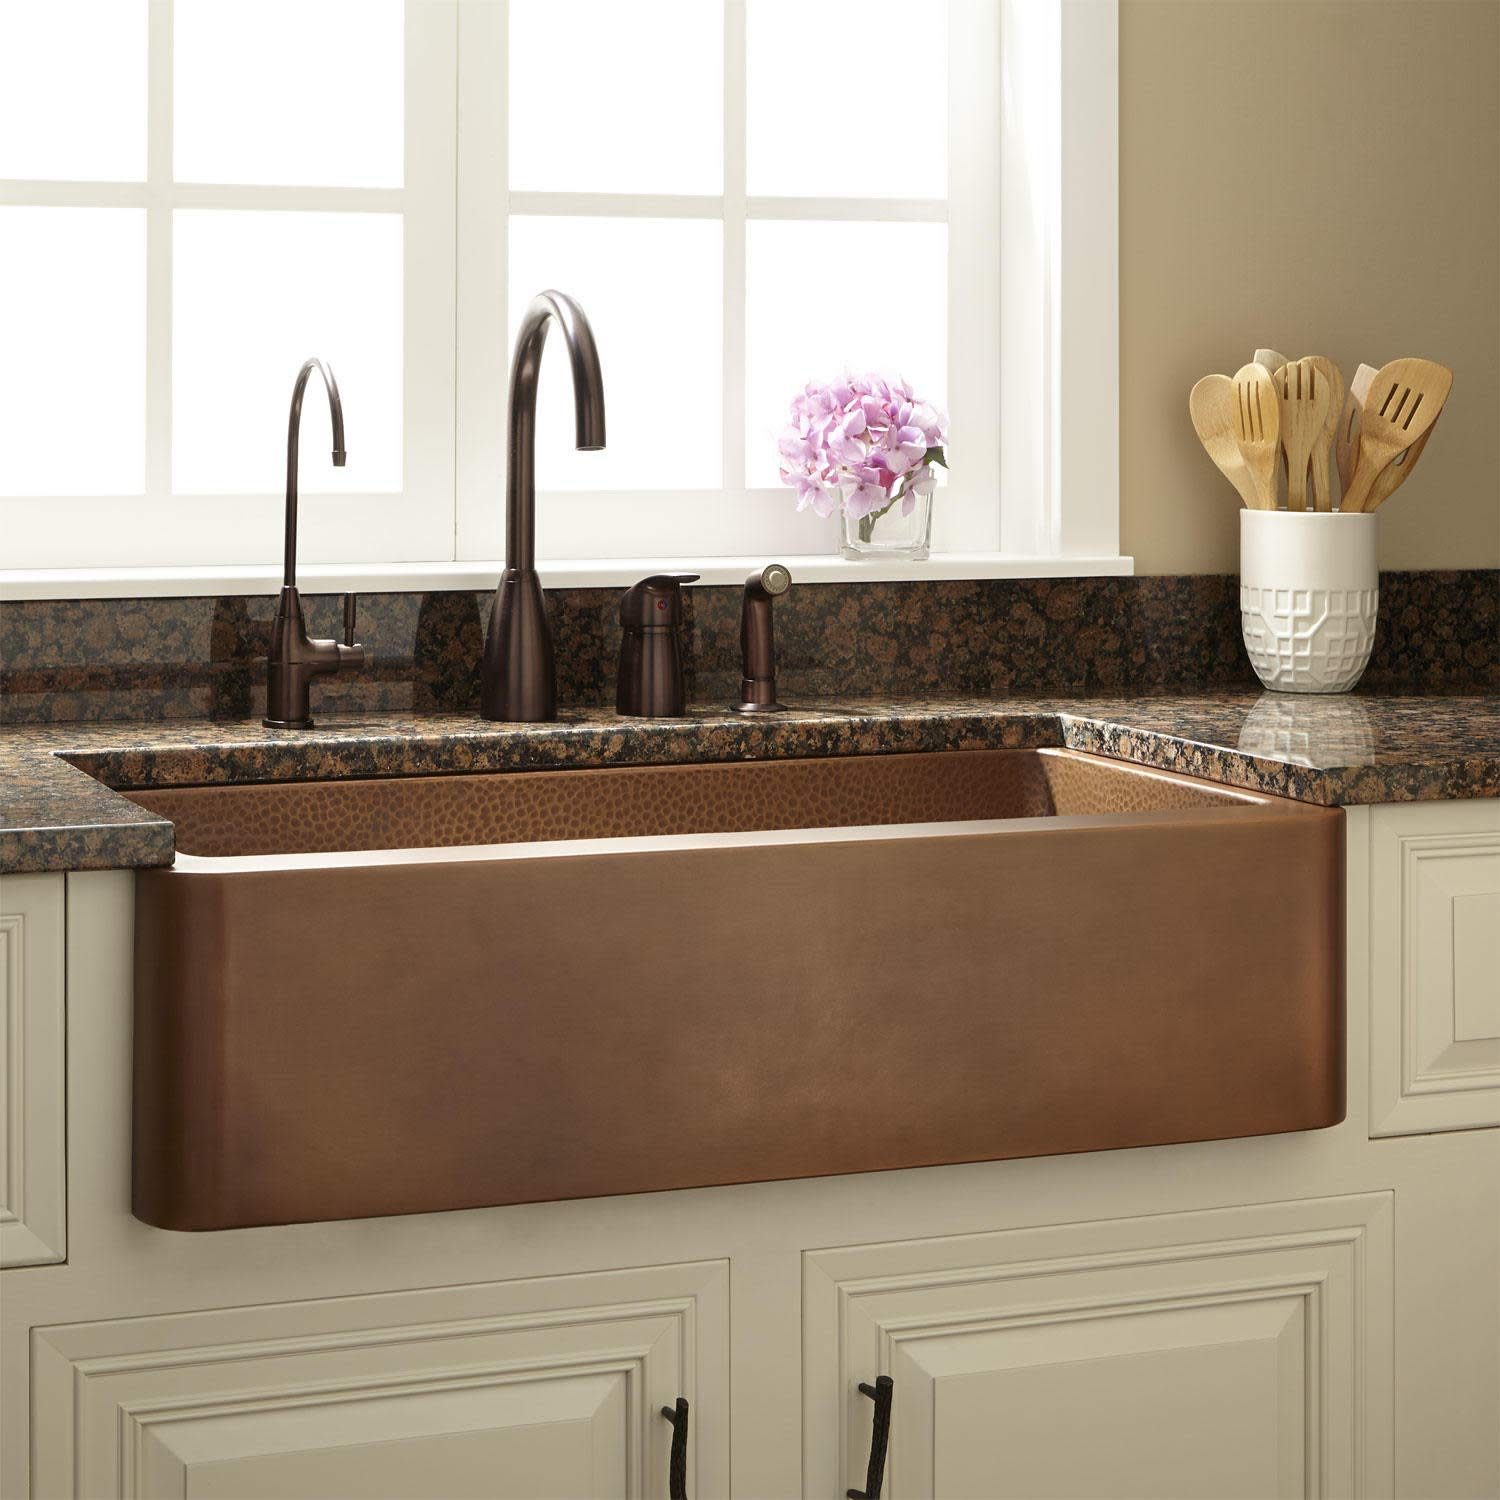 Signature Hardware 318879 Raina 36 Single Basin Copper Farmhouse Sink